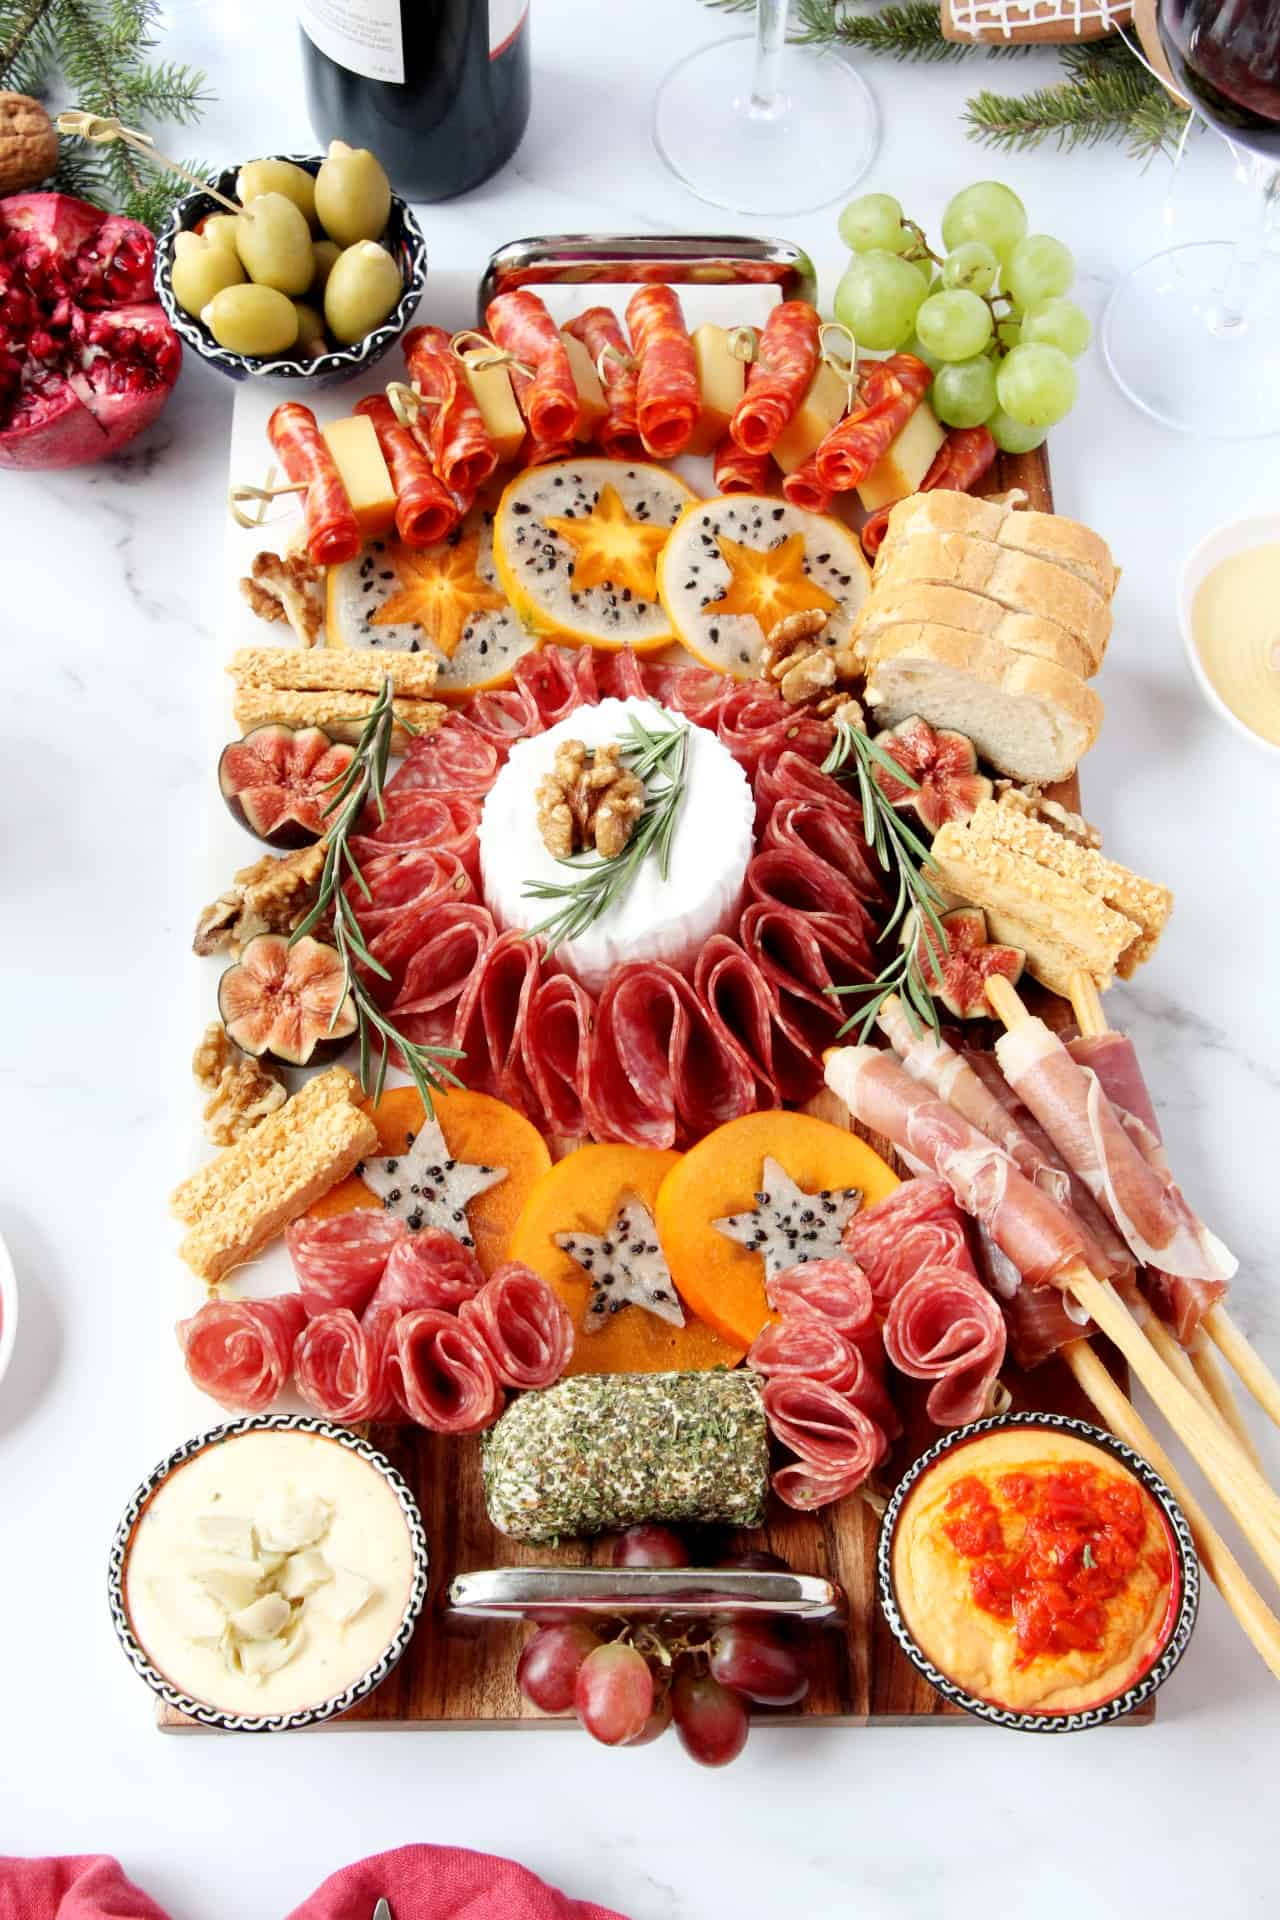 charcuterie and cheese board with fruit and dips